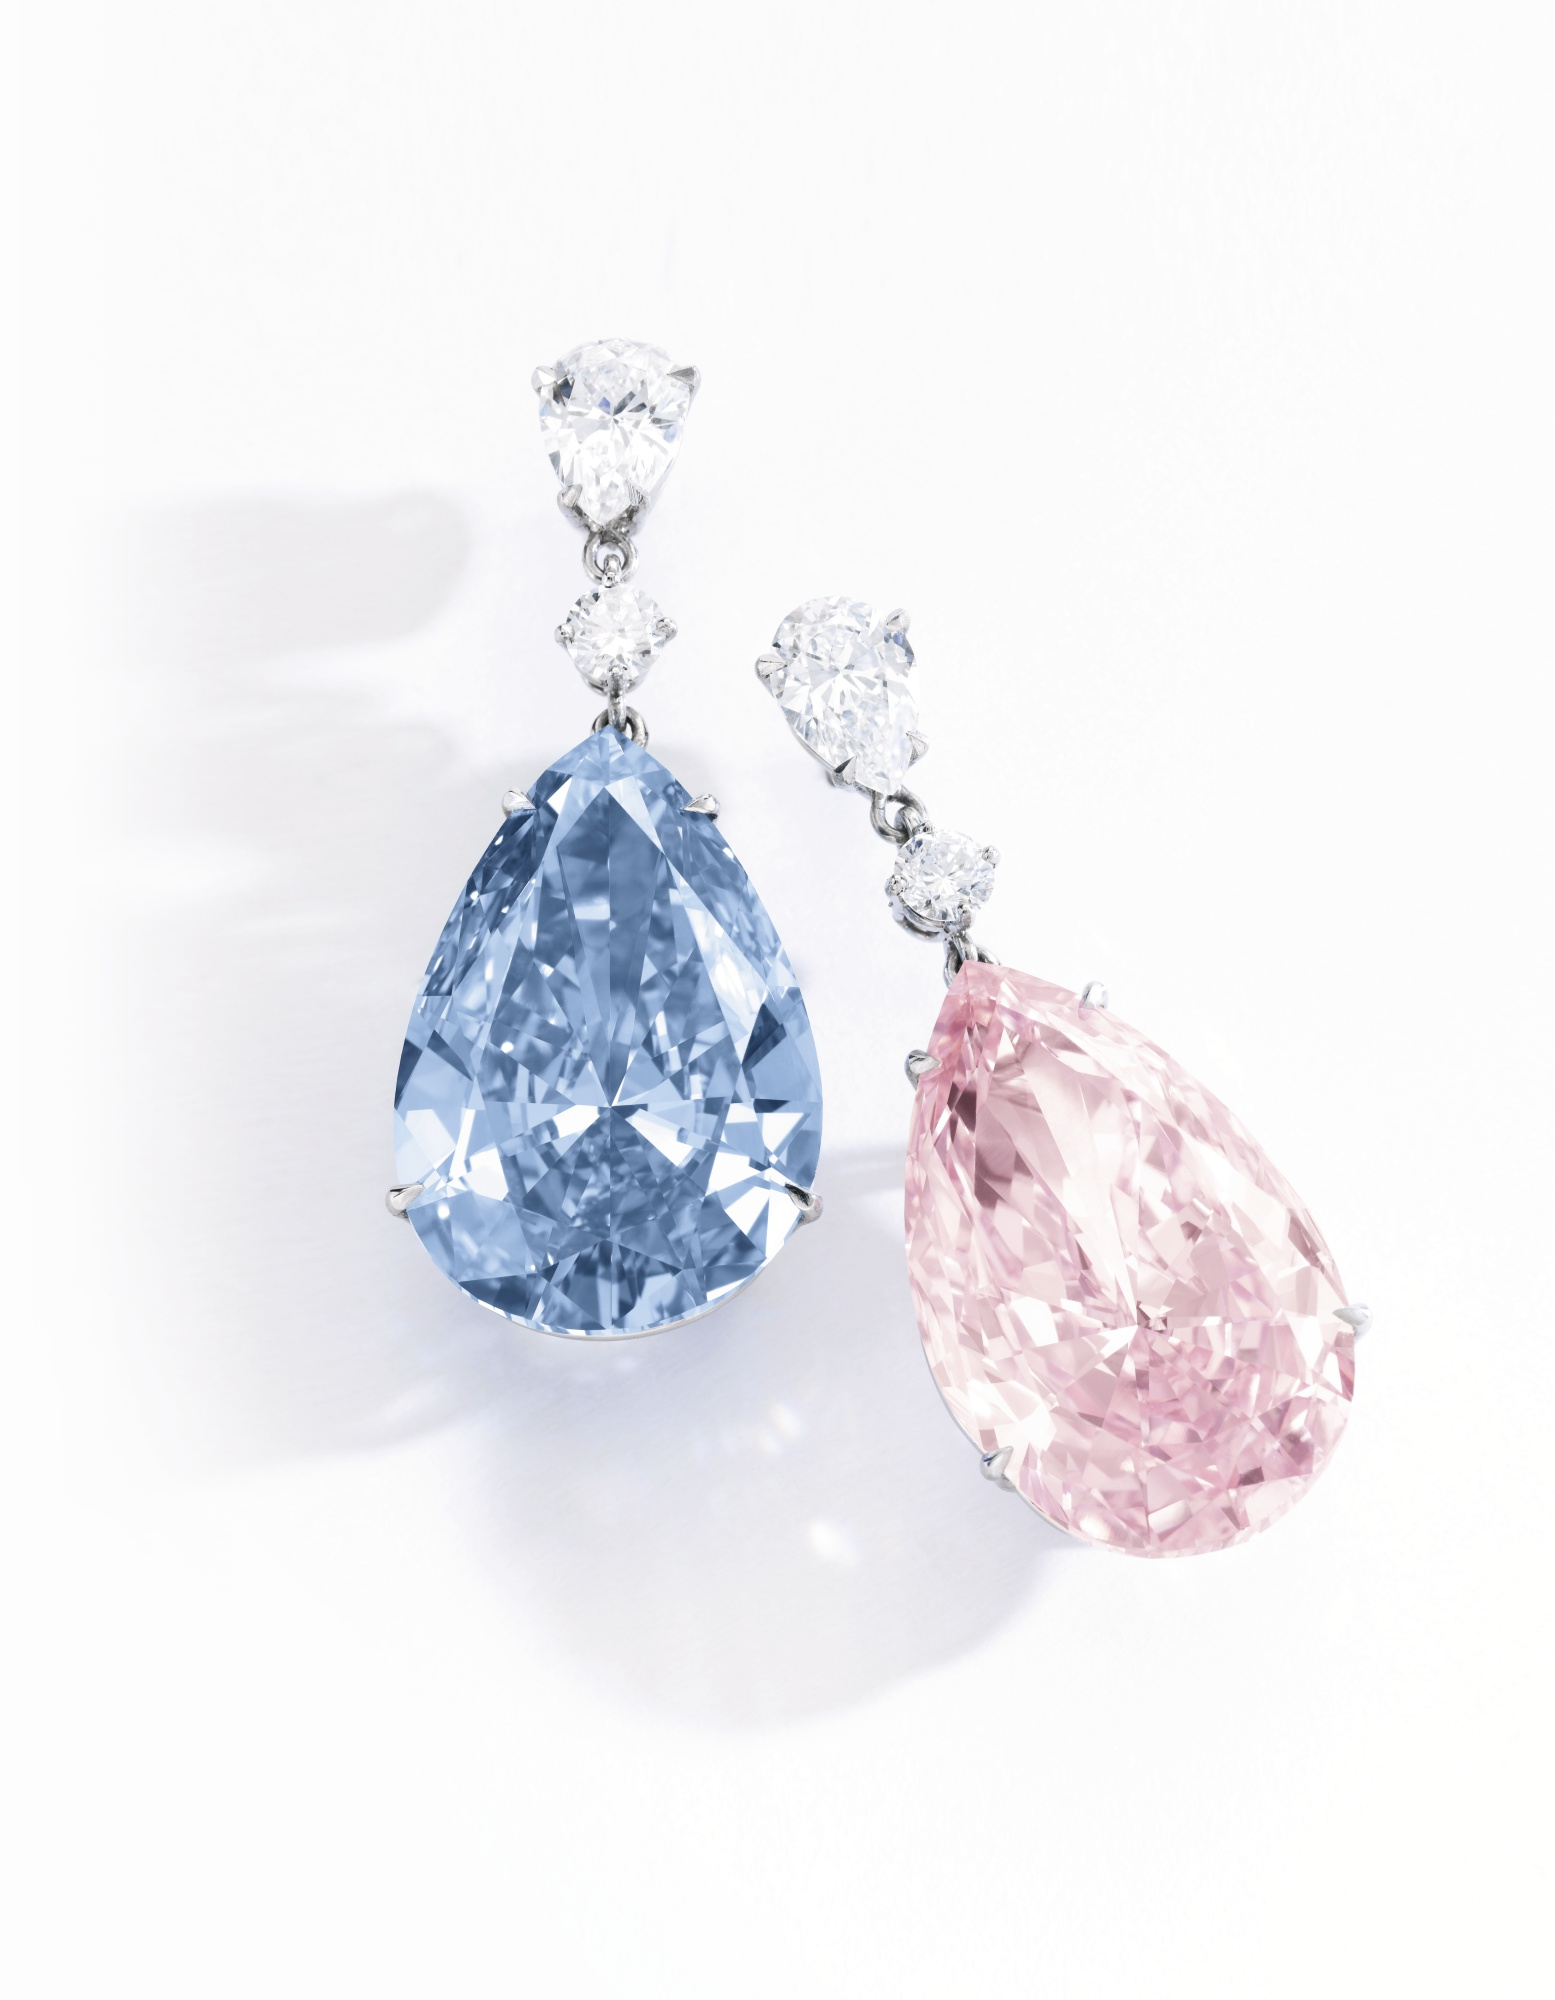 'Apollo & Artemis' fancy blue and fancy pink diamonds.